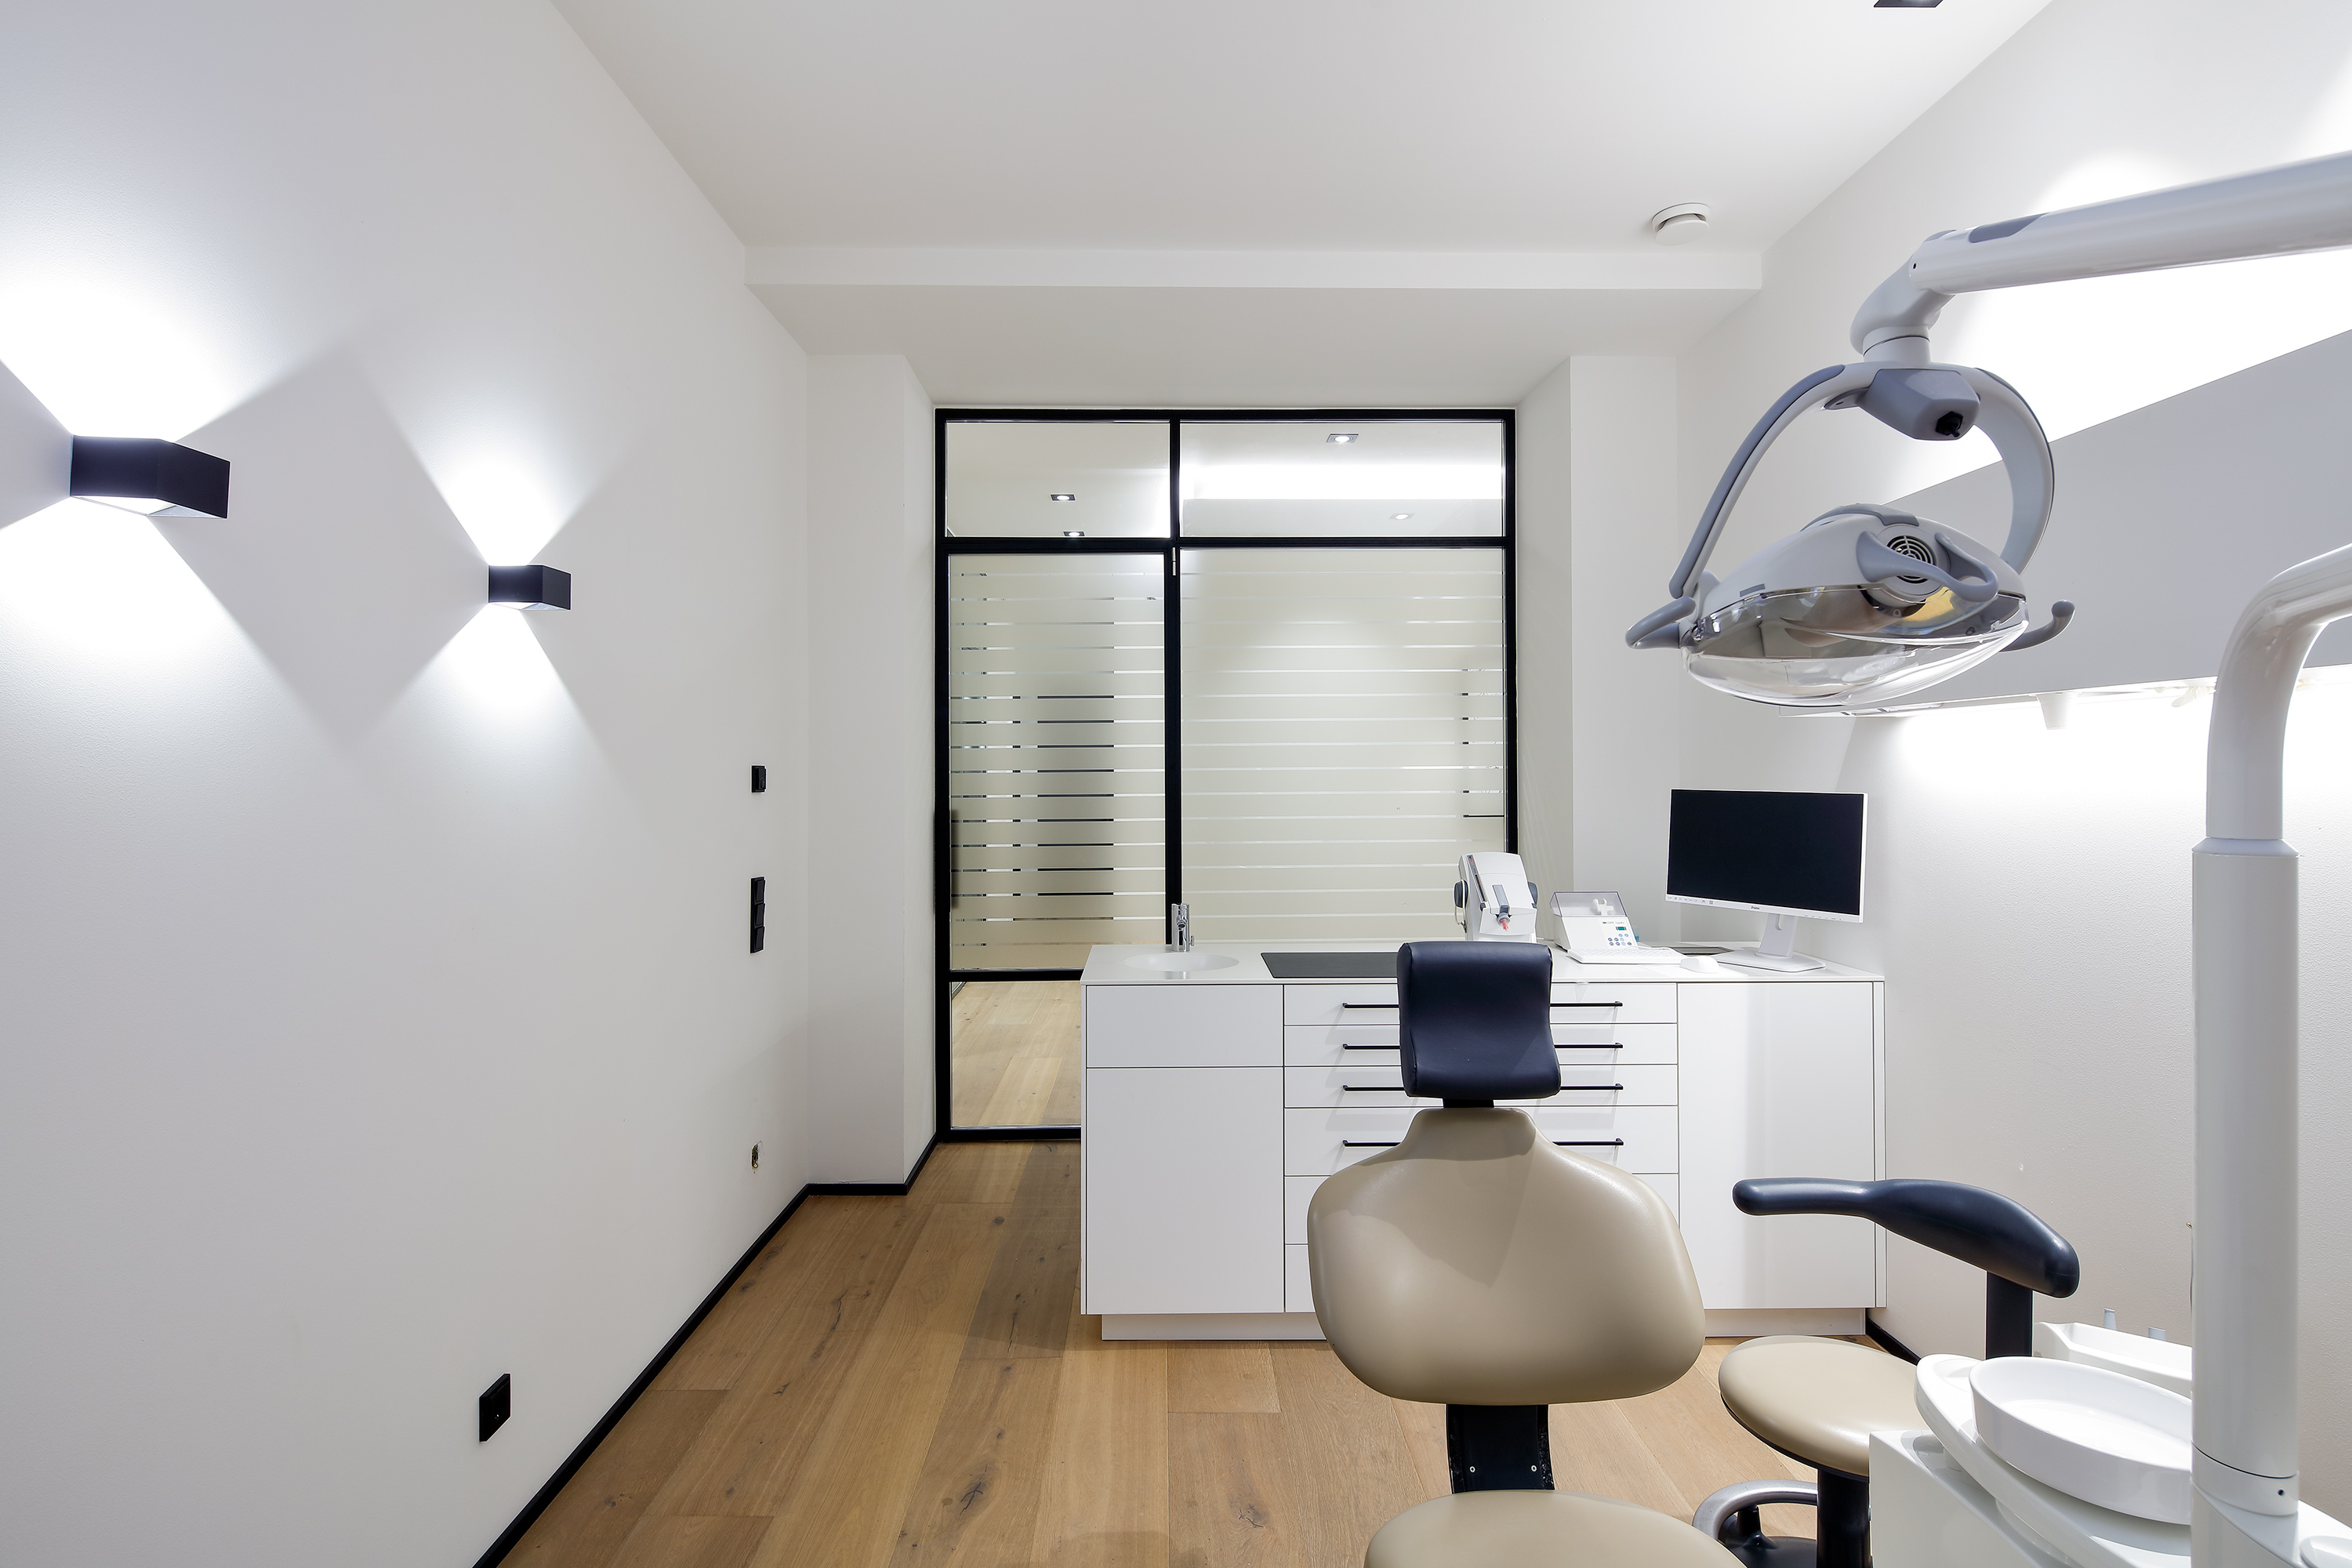 Studio dentistico Fischer-Brocks